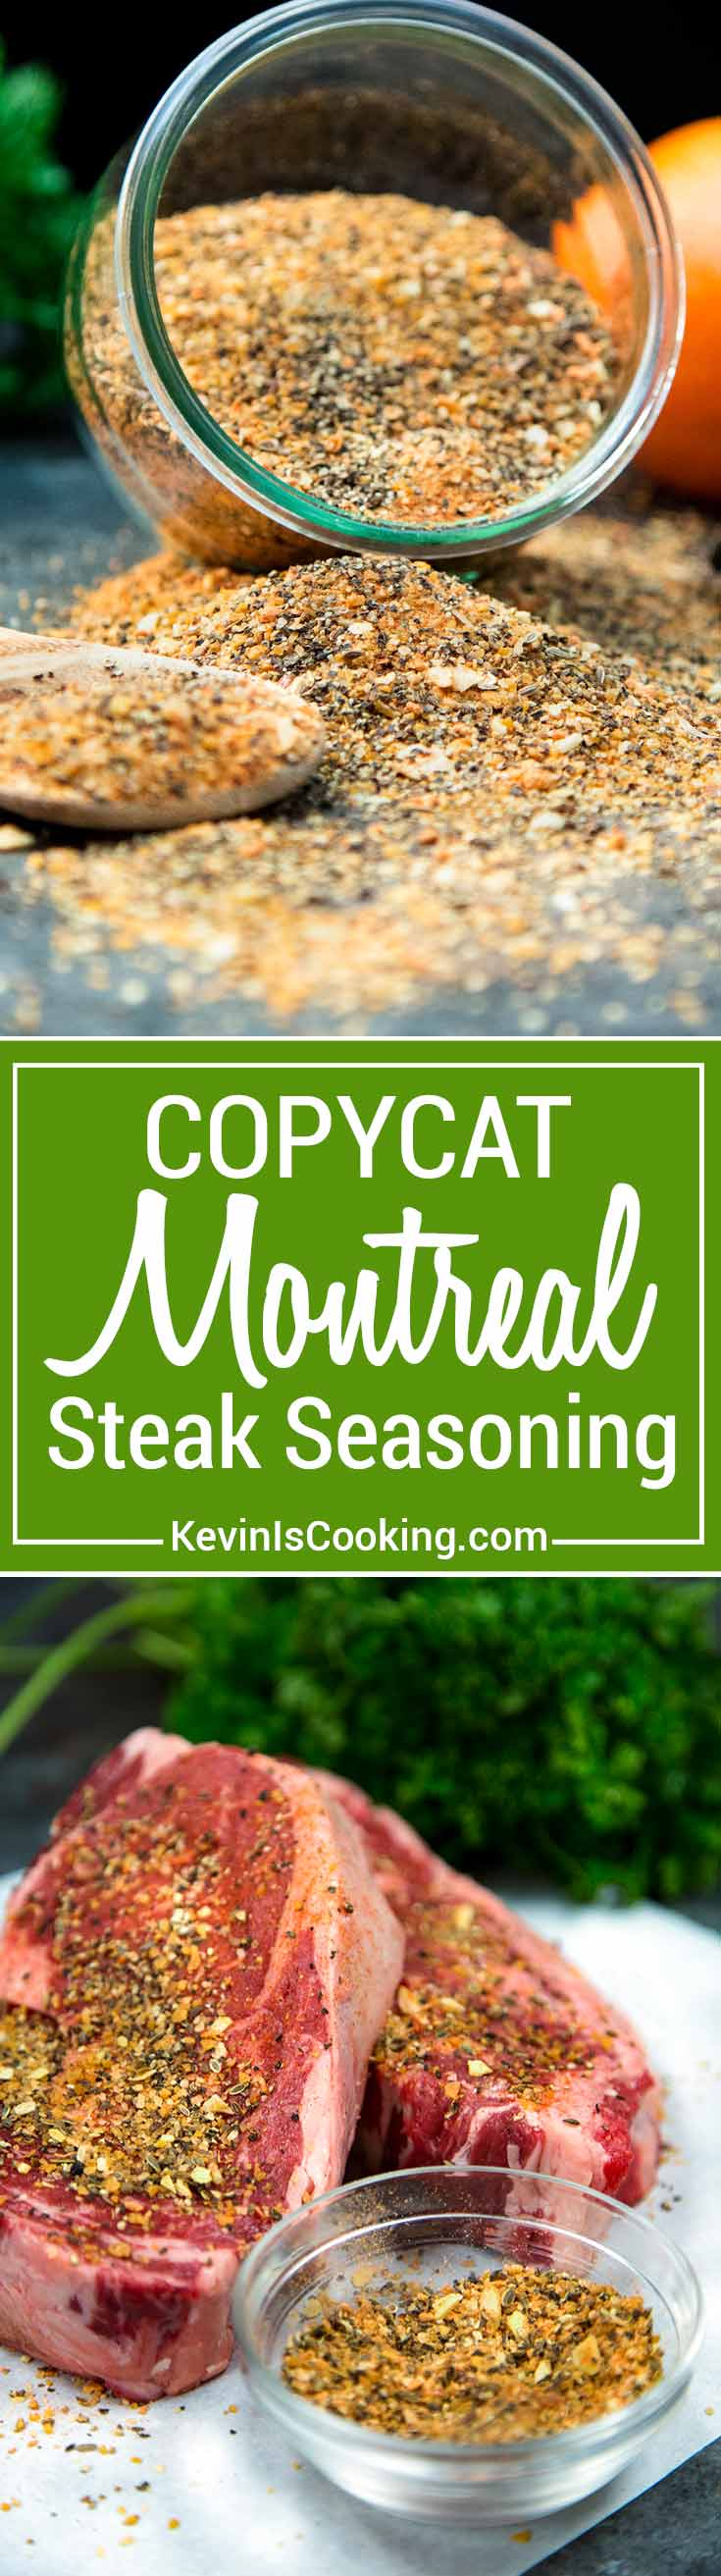 This Copycat Montreal Seasoning recipe is made with most items already in your spice cabinet. Without the loaded salt, this is perfect on grilled meats.